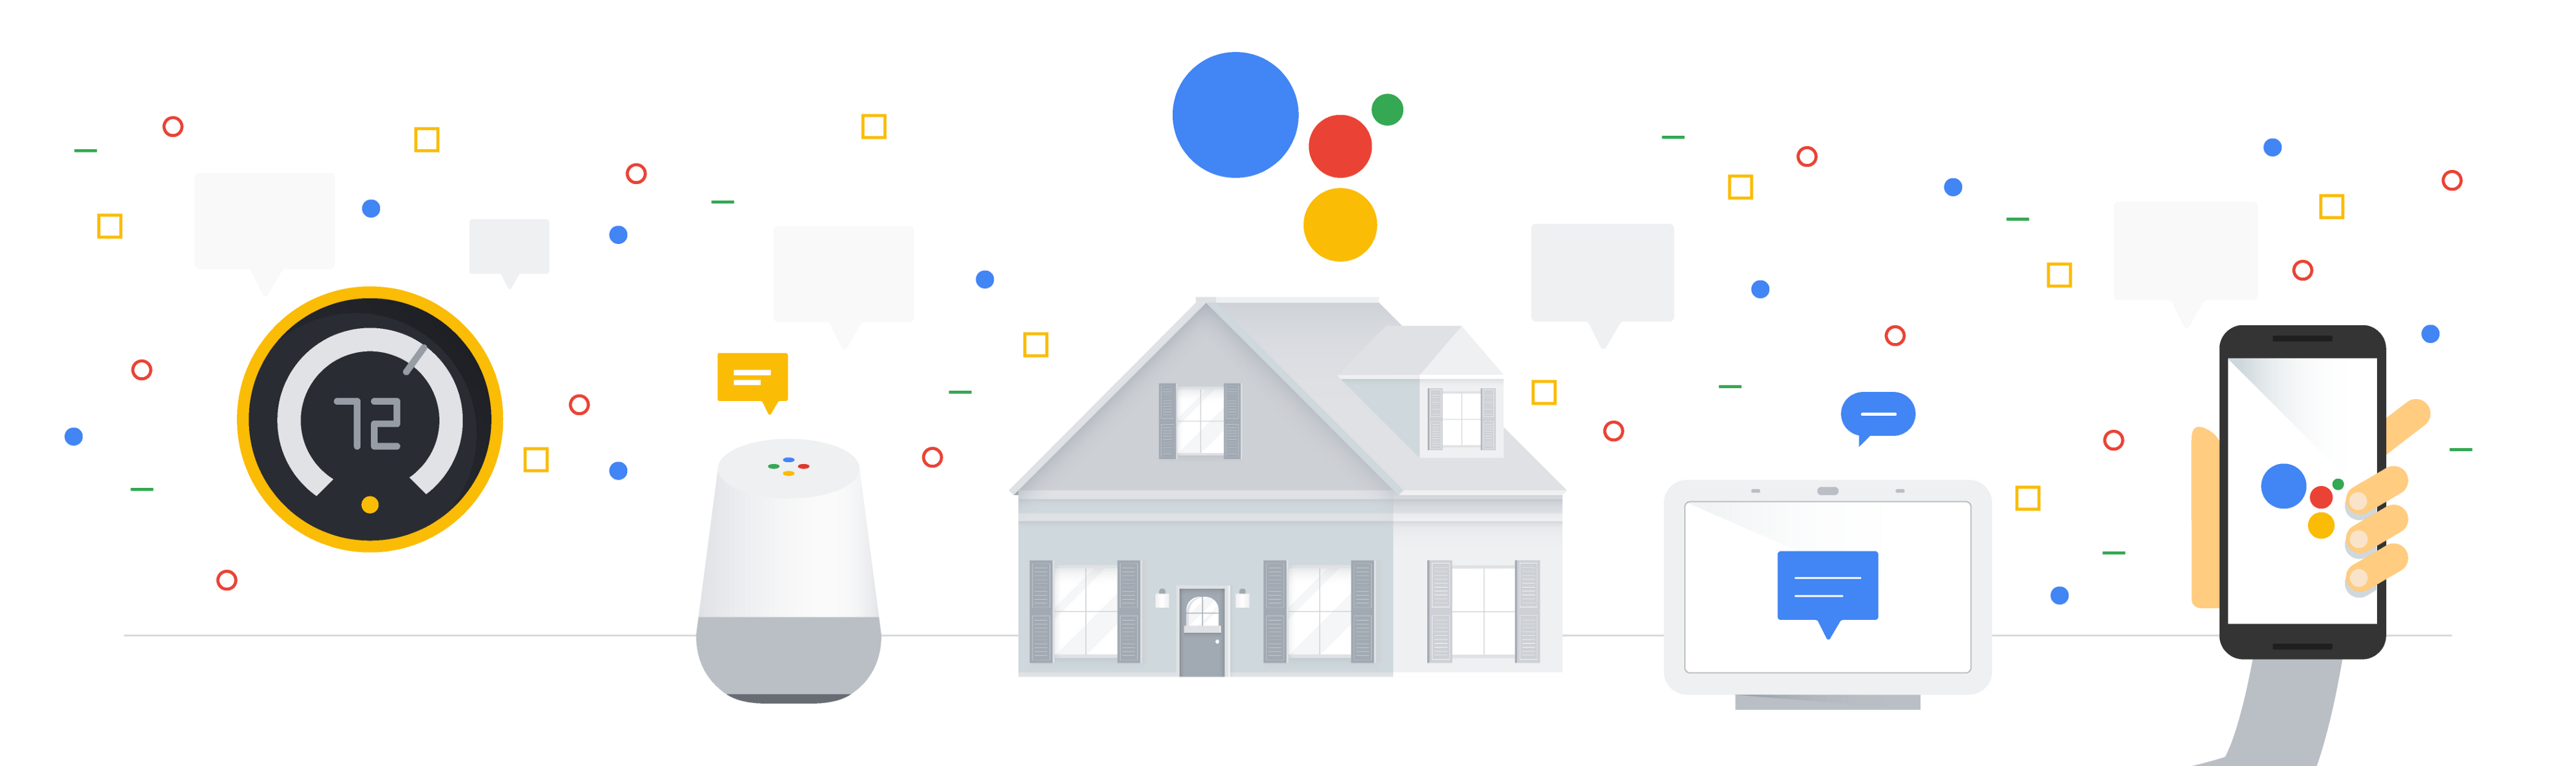 Illustration of a home with the Smart Home technology and other tech symbols.